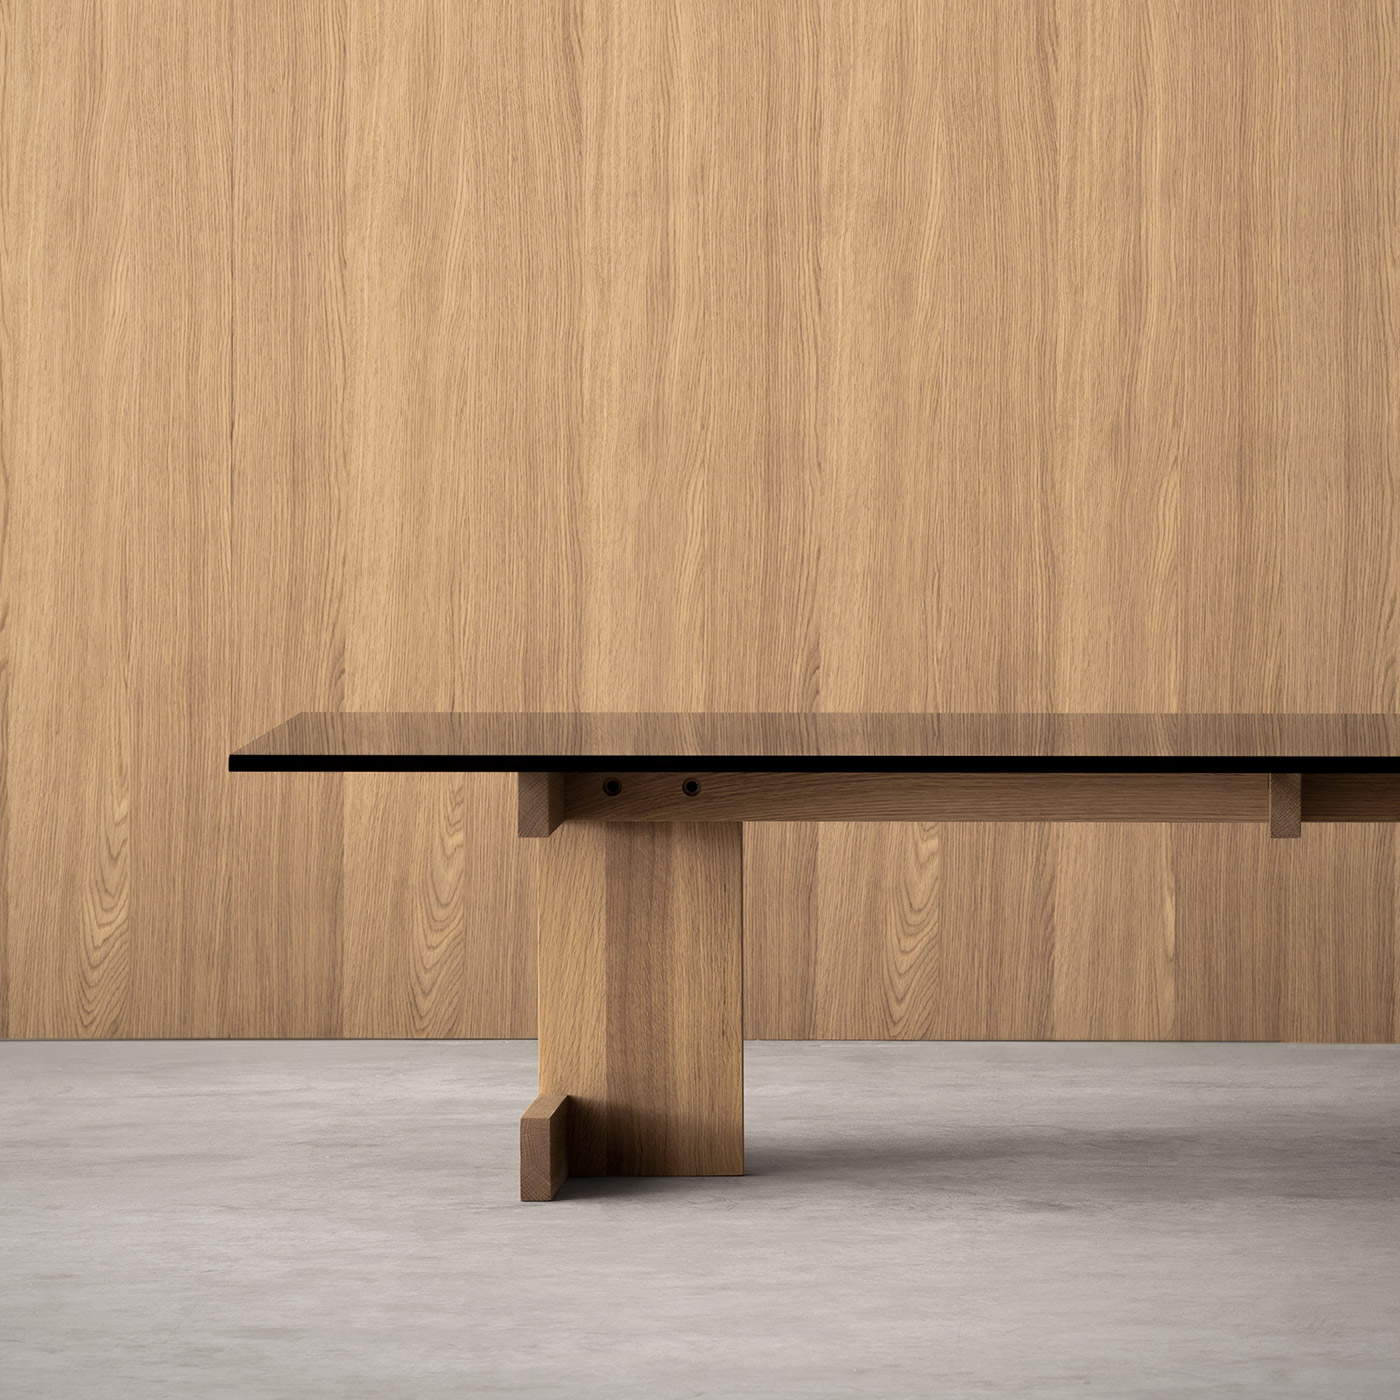 A-CT01 sofa table from Karimoku Case Study in oak and smoked glass